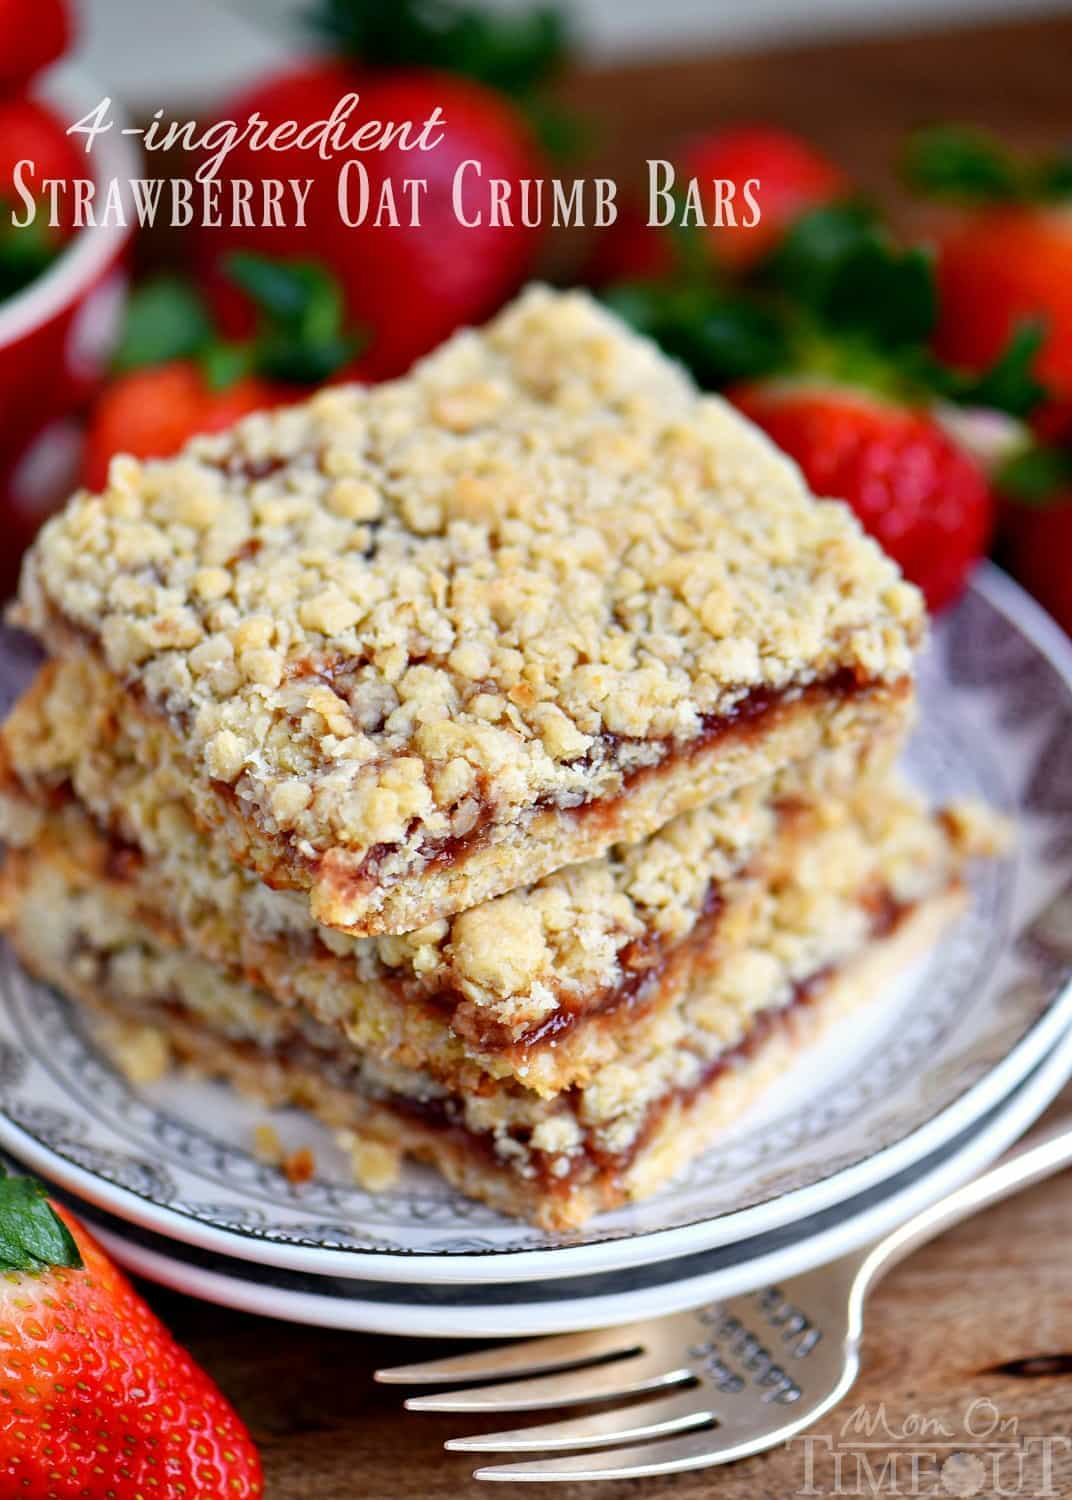 Dessert has never been easier or more delicious than with these 4 Ingredient Strawberry Oat Crumb Bars! Serve warm with ice cream for an exceptionally delicious treat! // Mom On Timeout